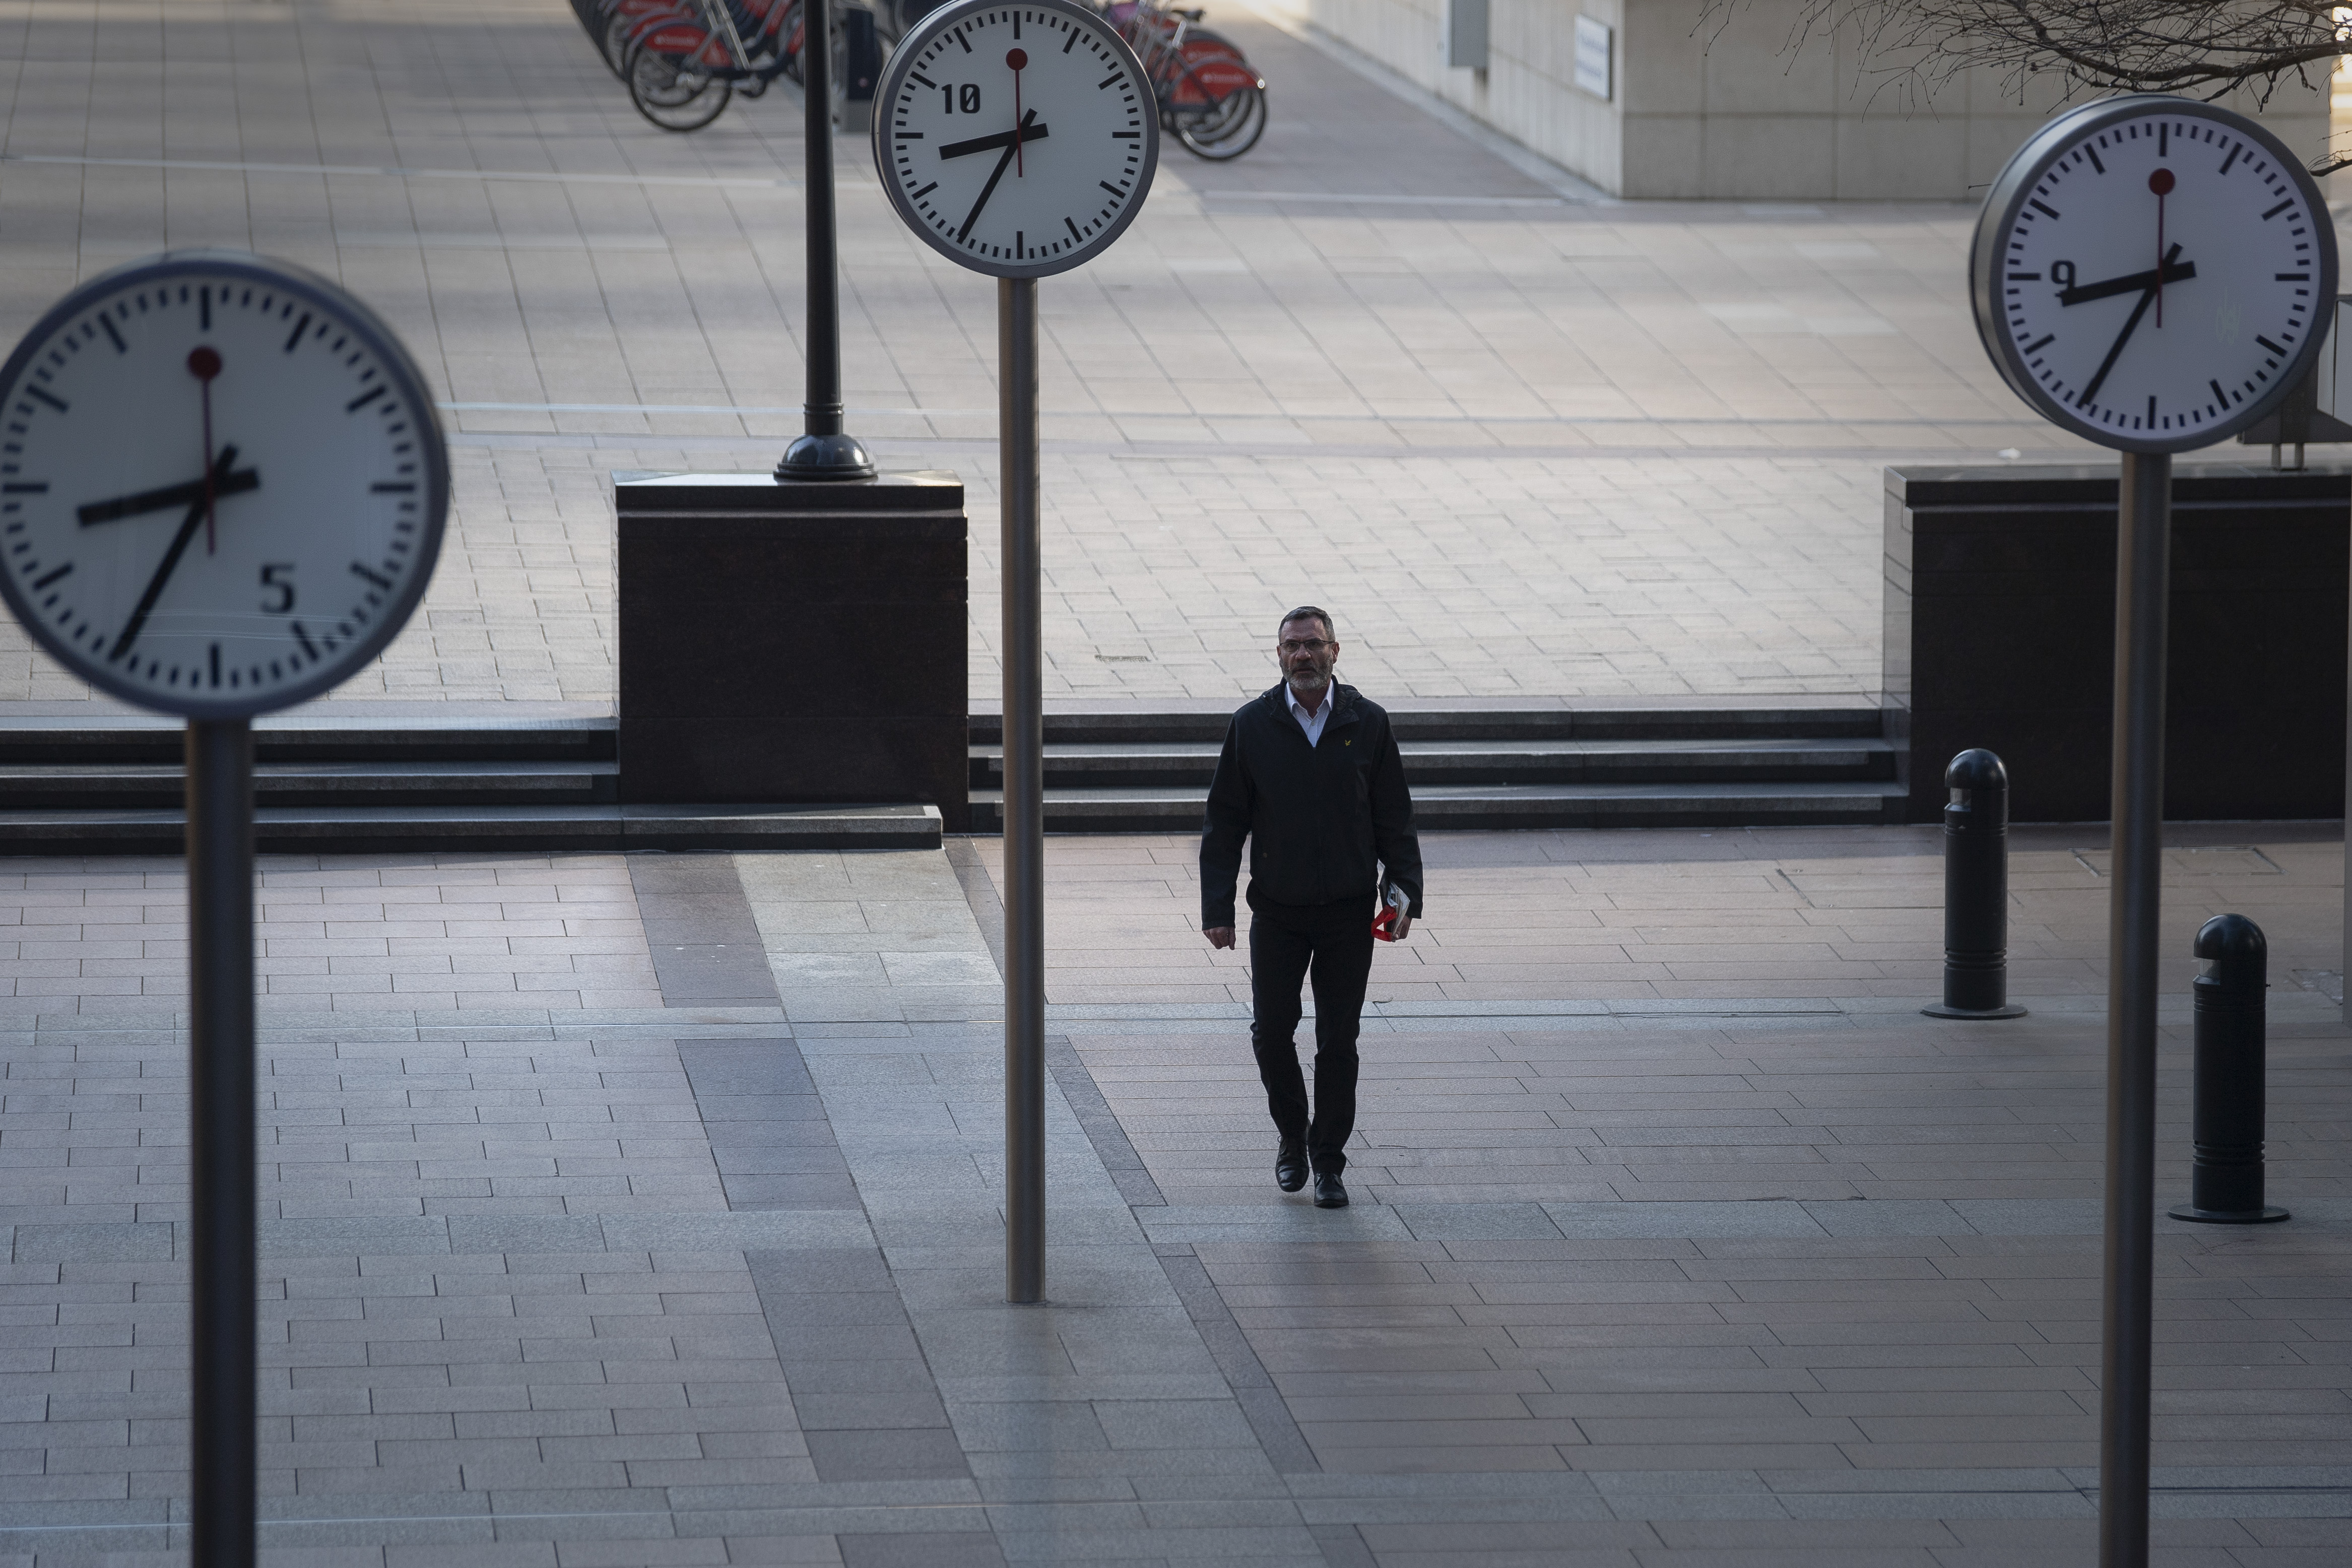 A man walks in Canary Wharf, London during rush hour, after Prime Minister Boris Johnson has put the UK in lockdown to help curb the spread of the coronavirus.